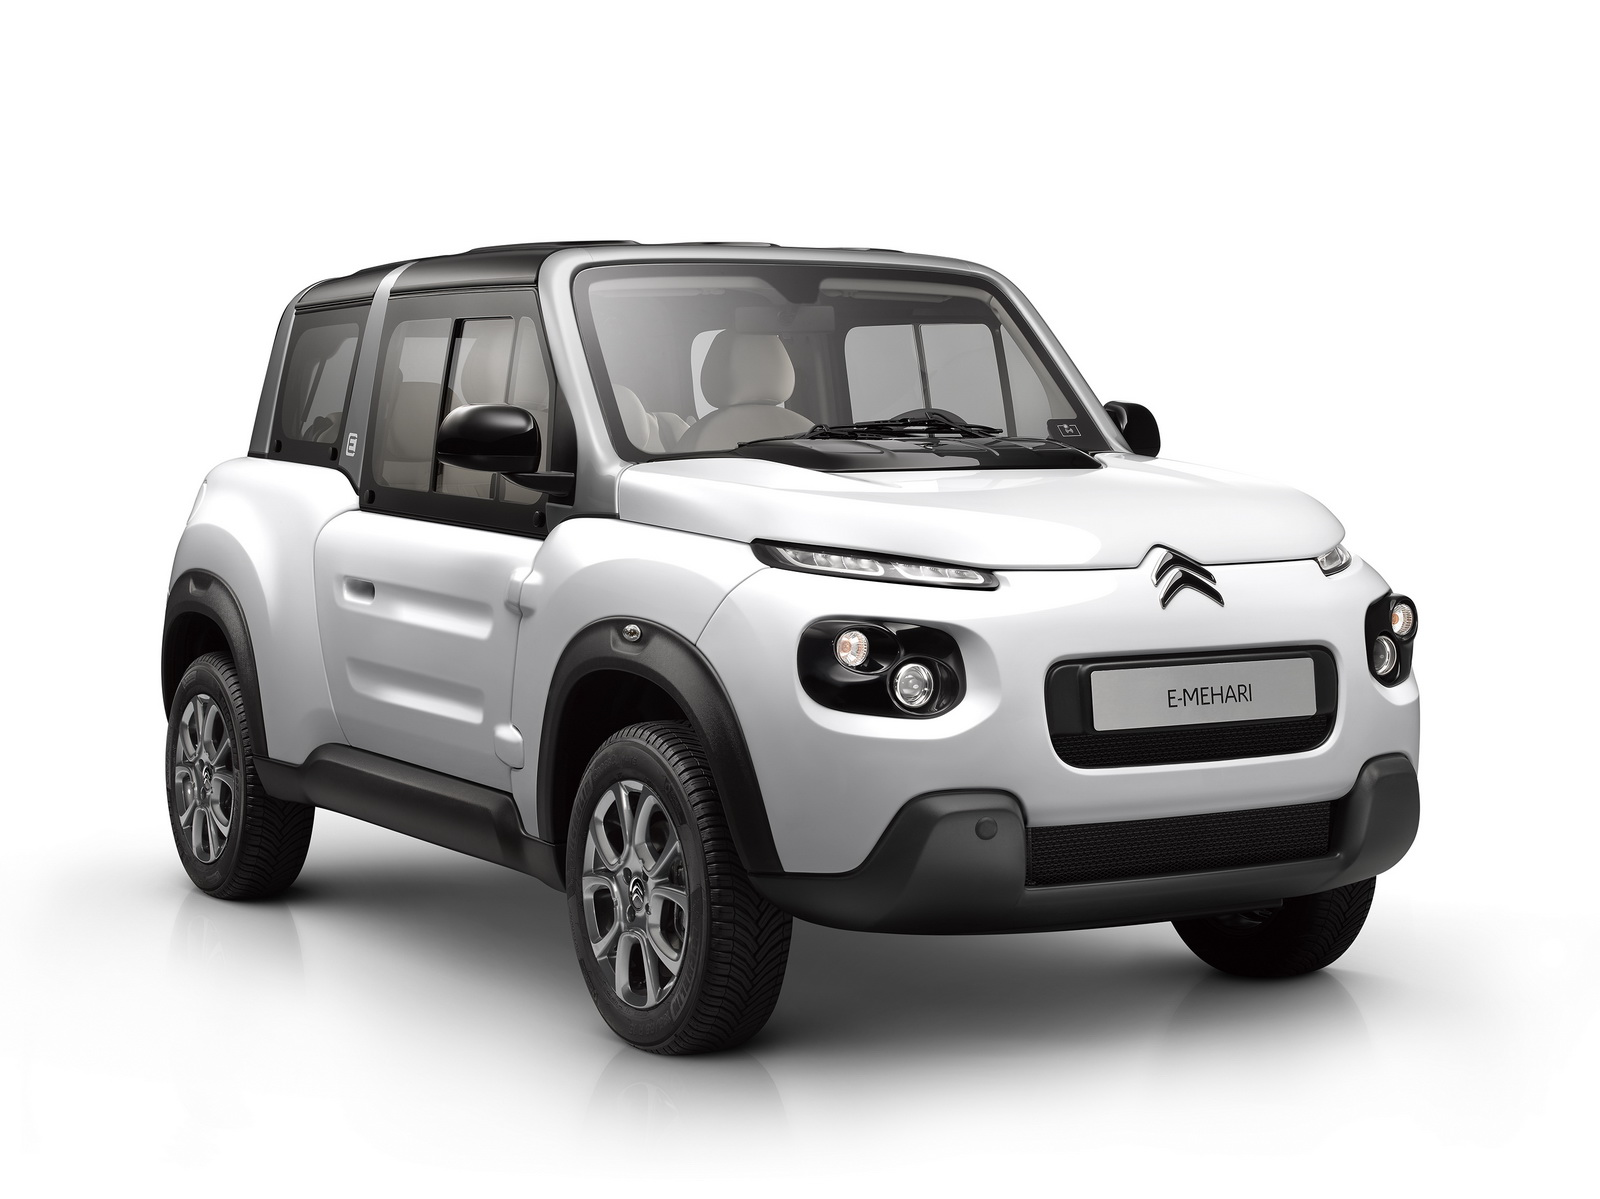 electric citroen e mehari becomes more practical with new interior and hardtop option carscoops. Black Bedroom Furniture Sets. Home Design Ideas